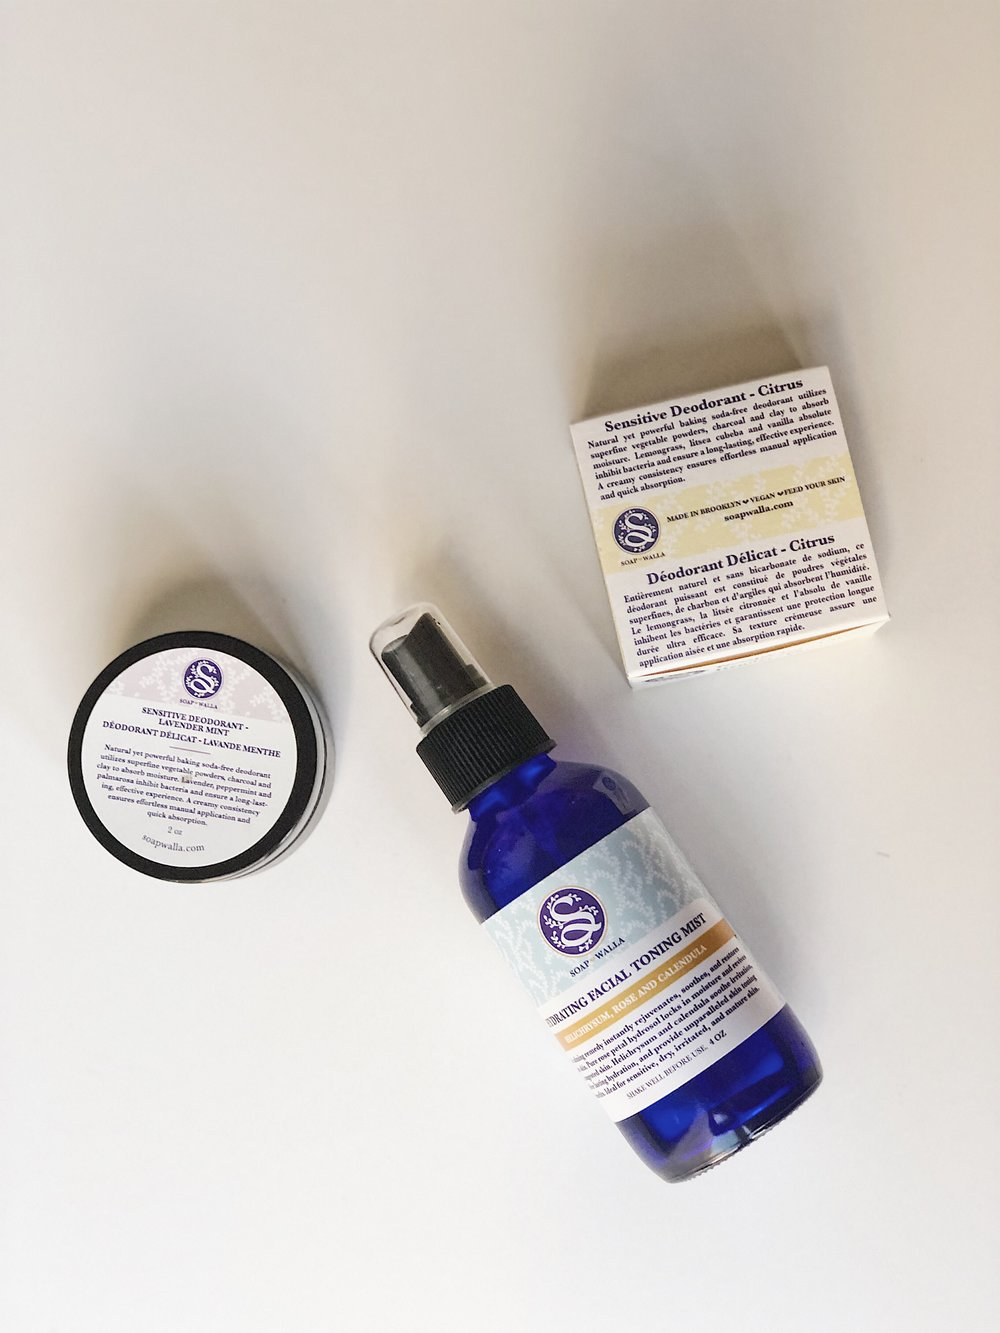 My current favorites from Soapwalla: natural deodorants and facial toning spray.